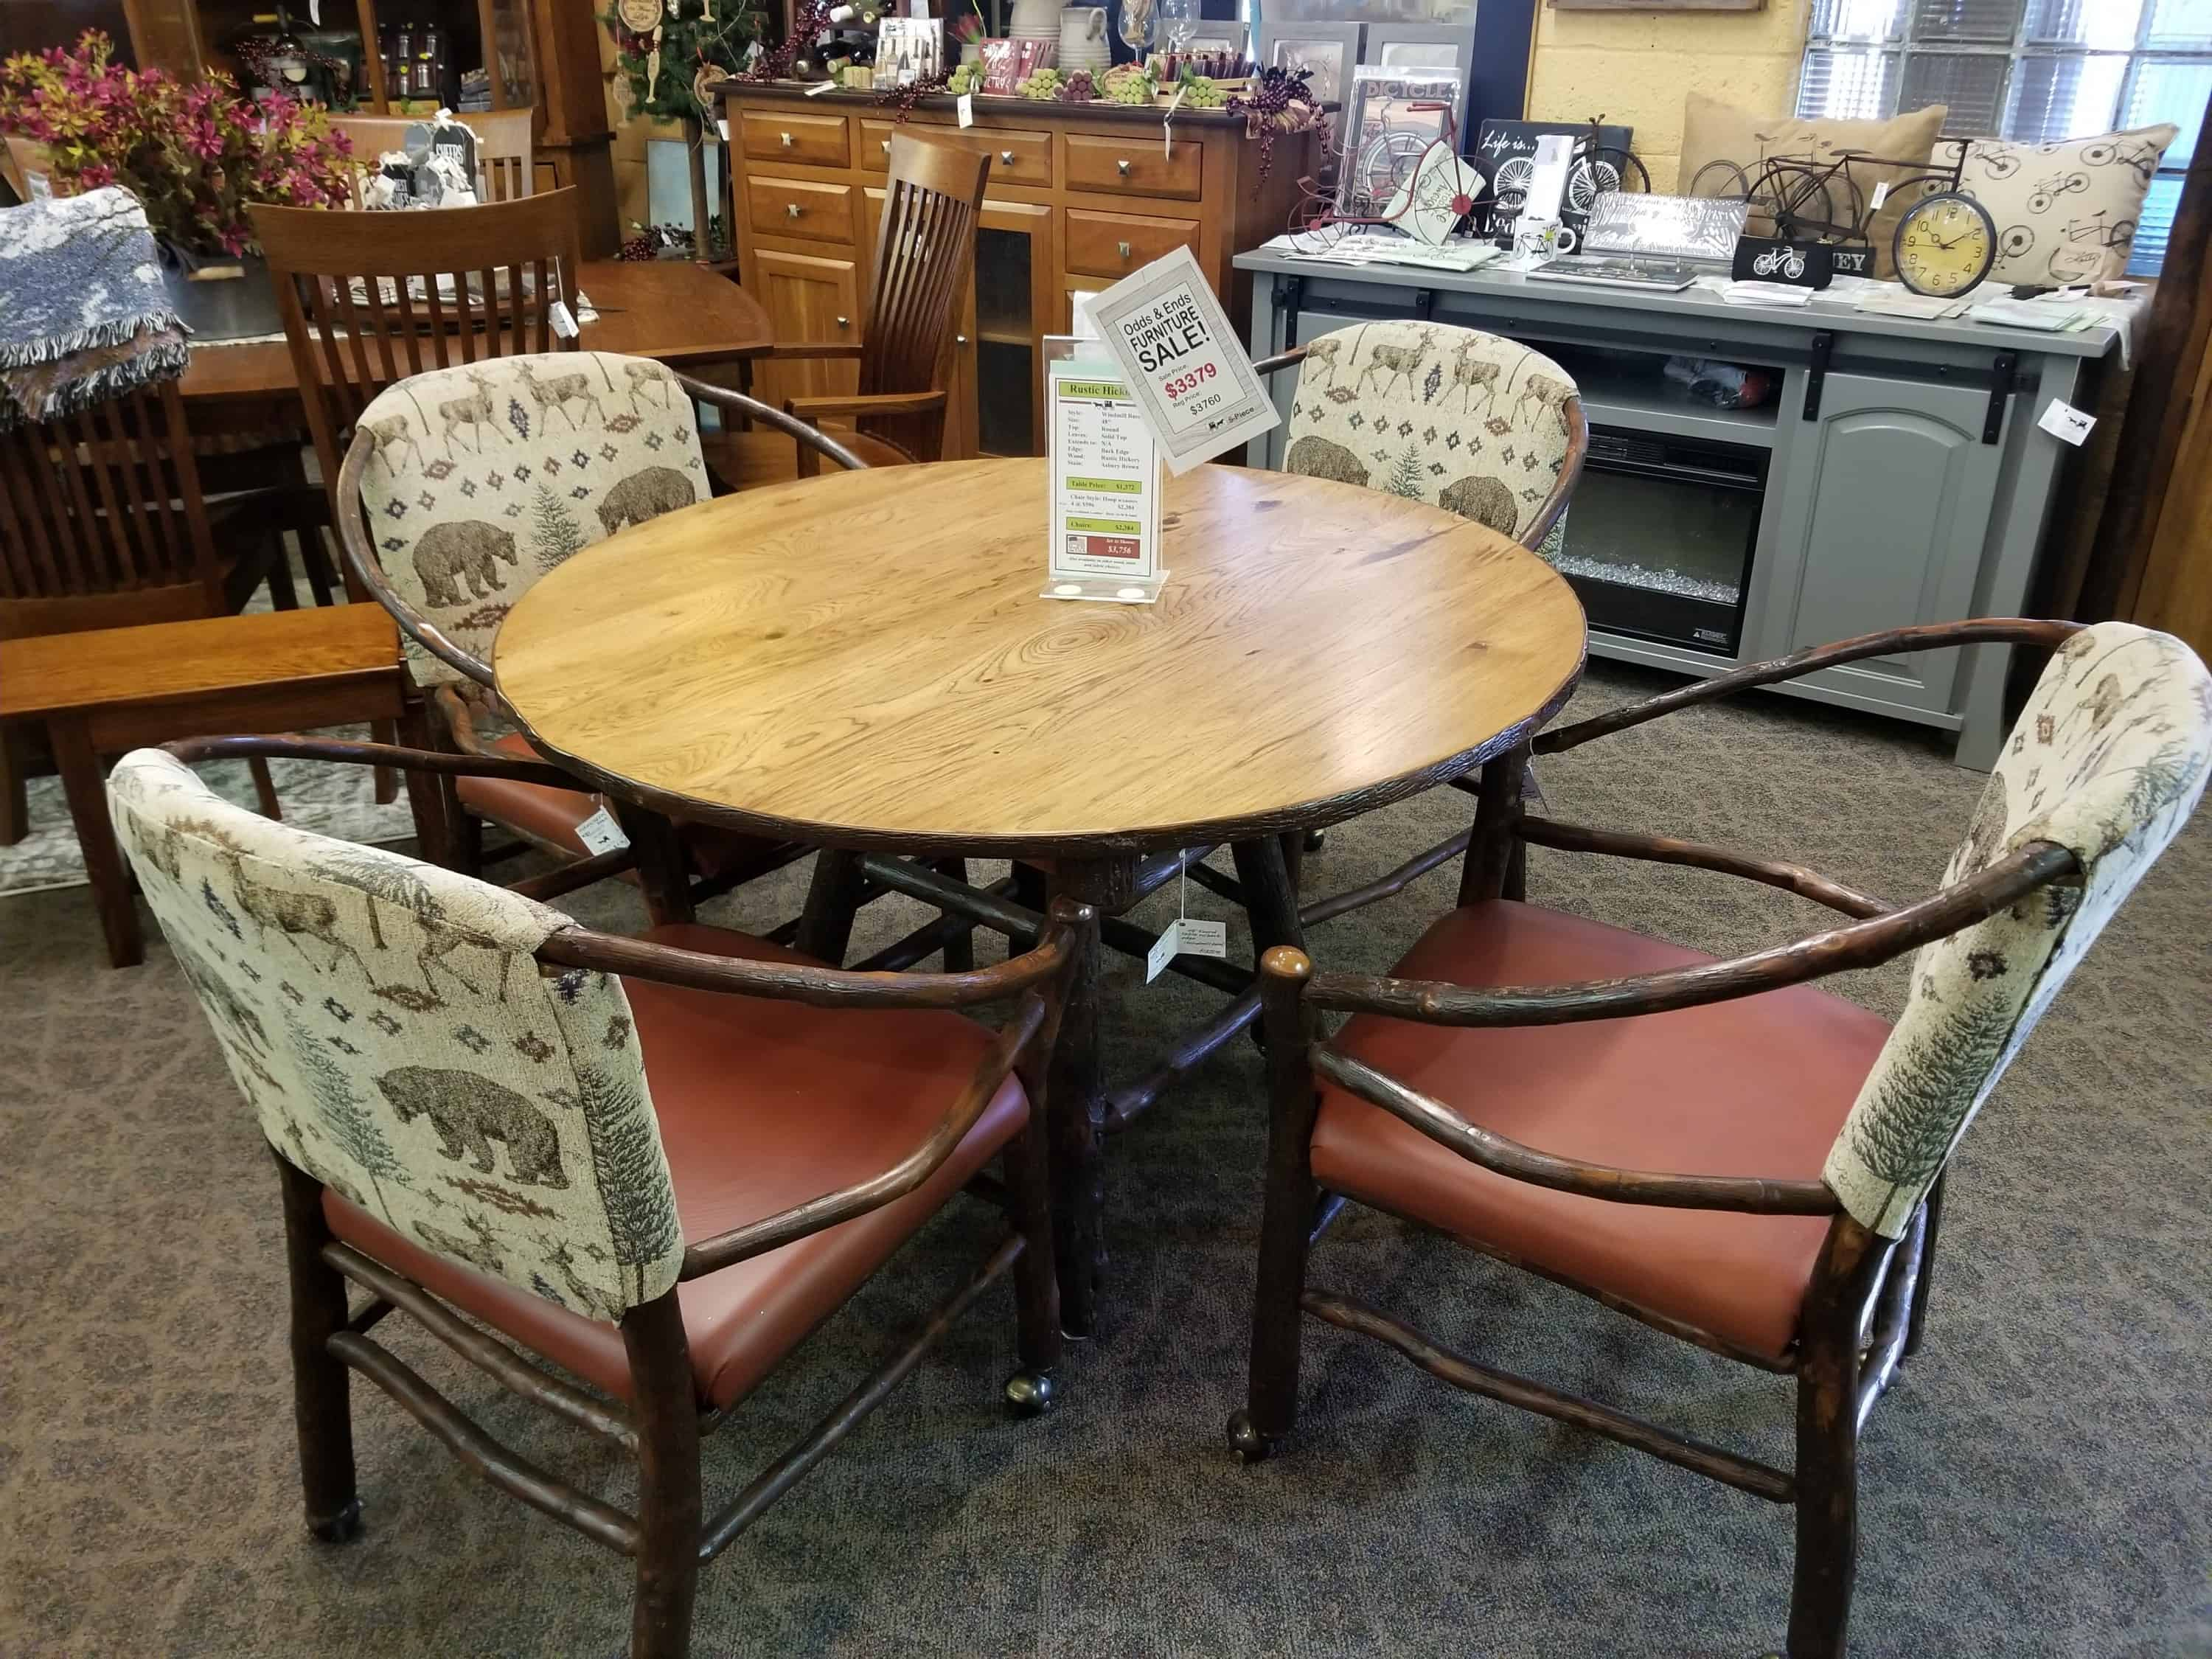 Round log table set with 4 hoop chairs with castors